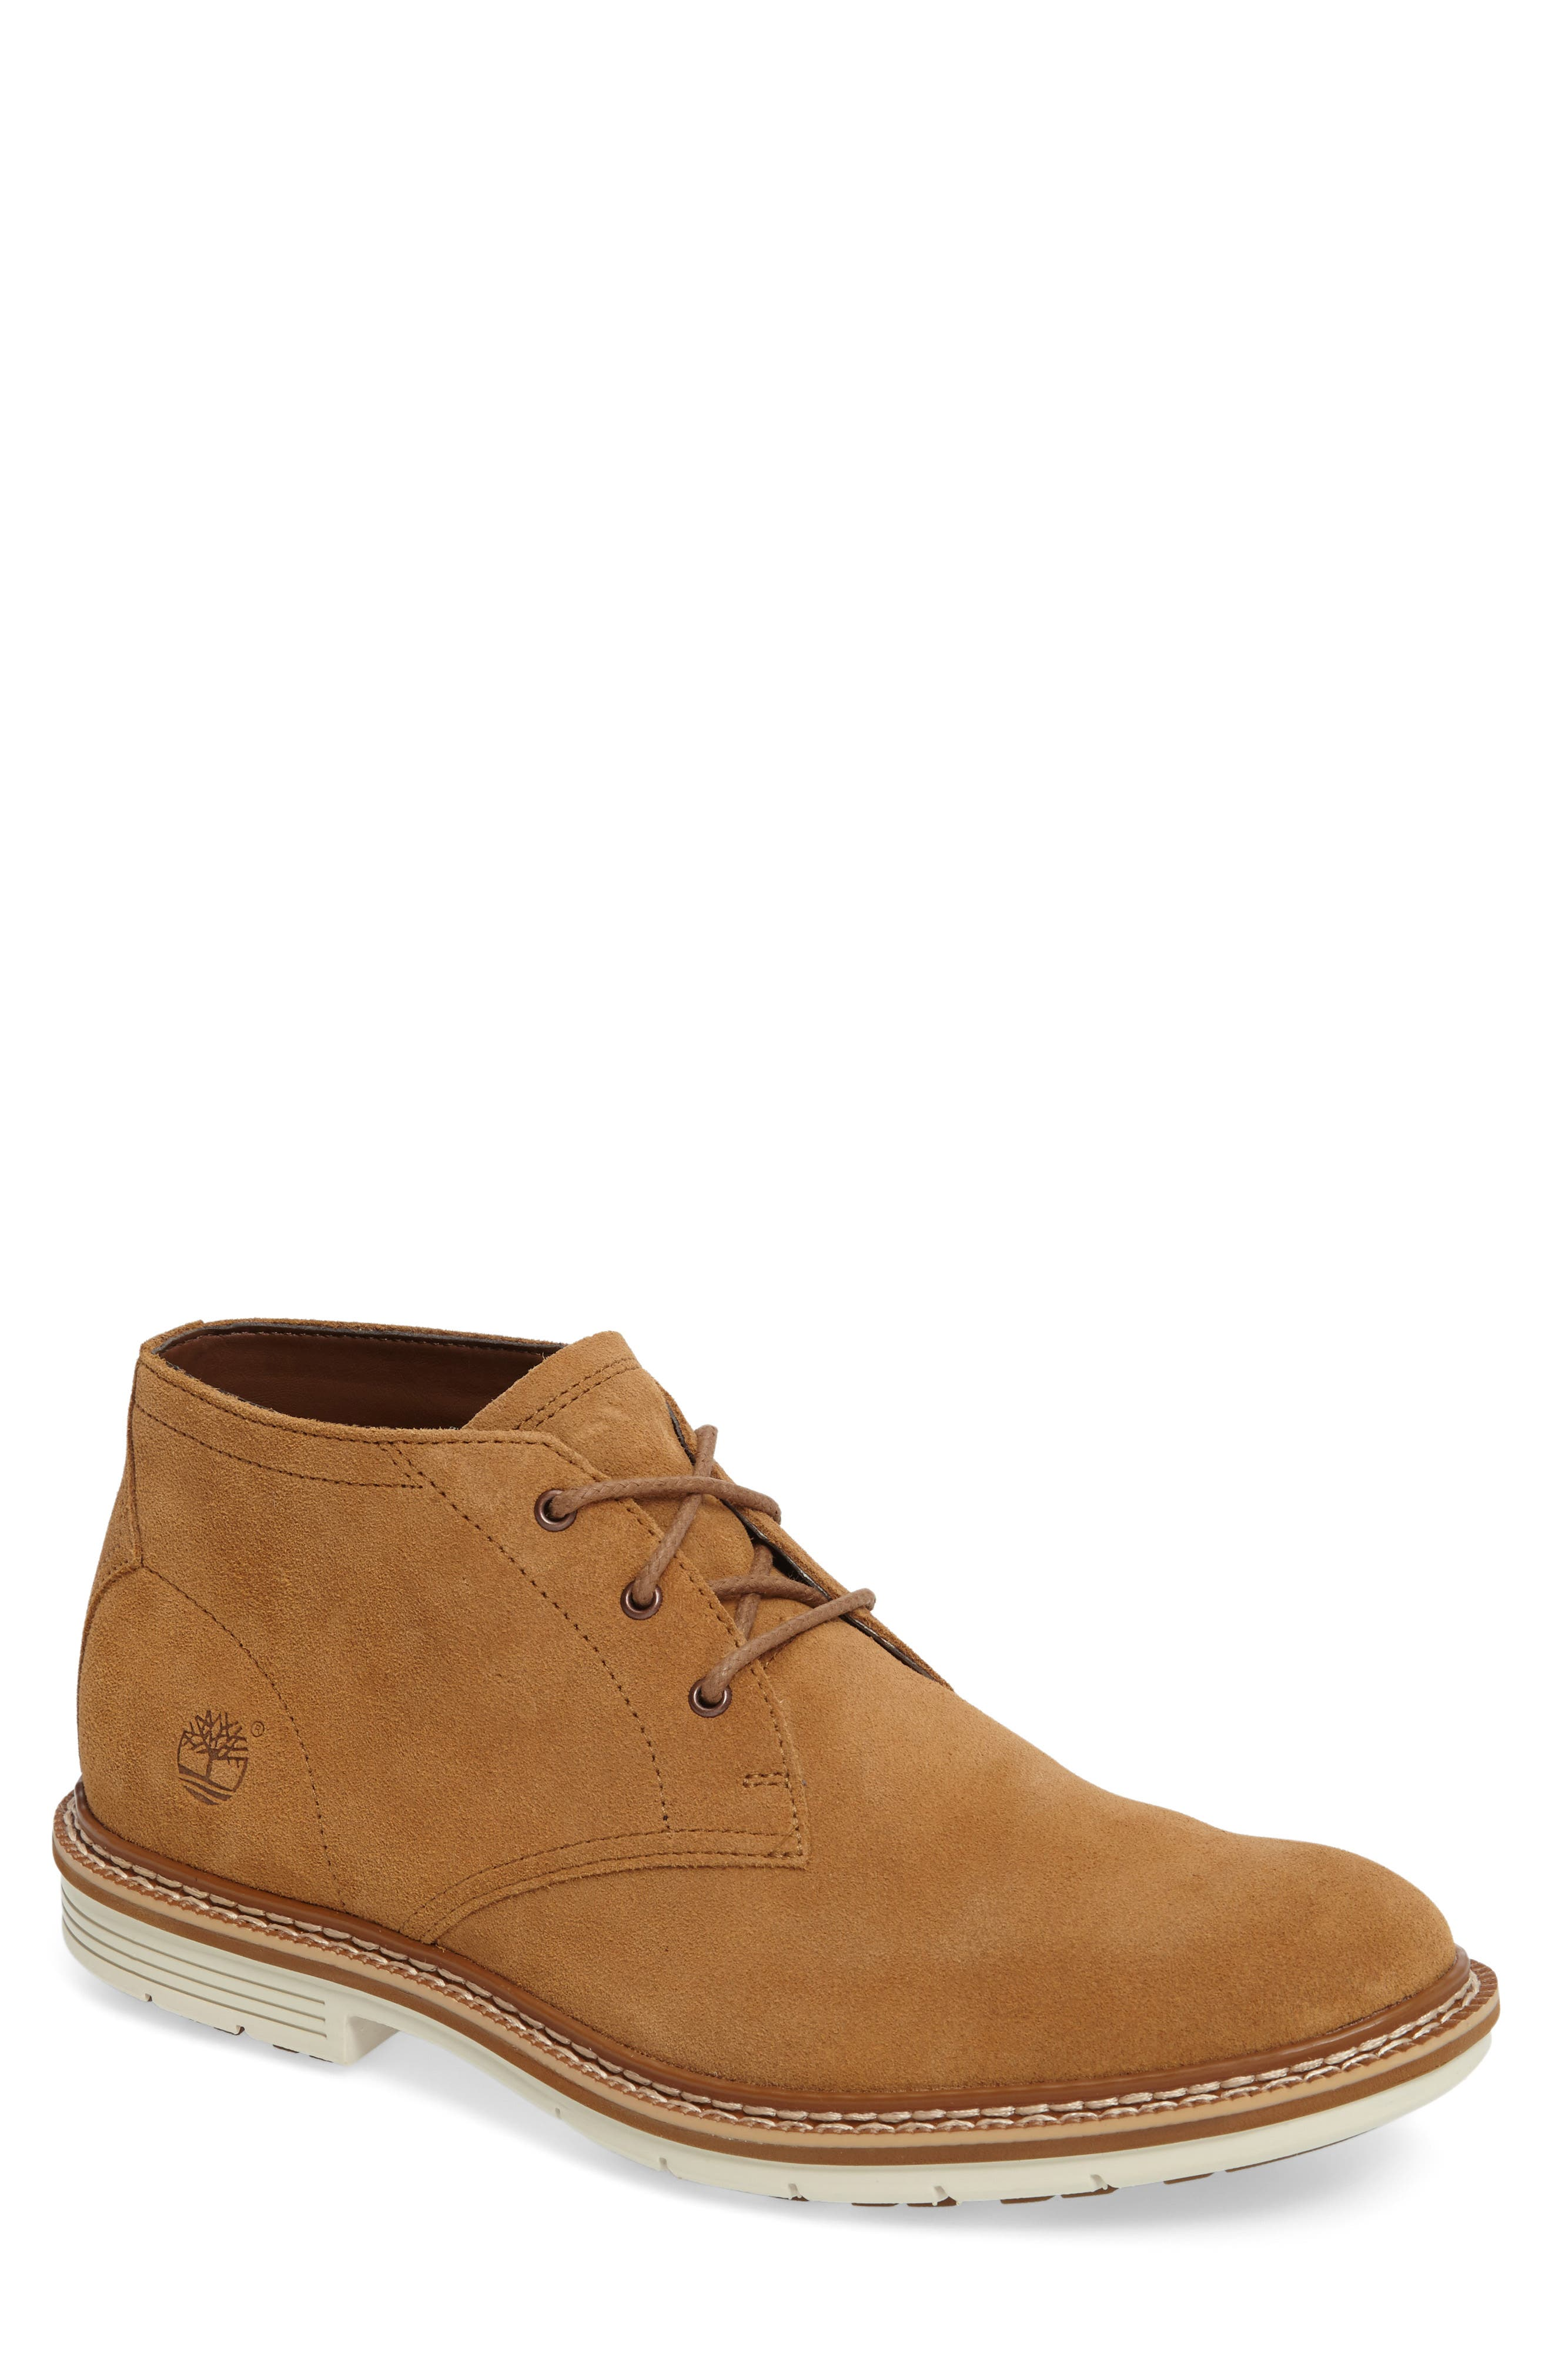 Alternate Image 1 Selected - Timberland Naples Trail Chukka Boot (Men)